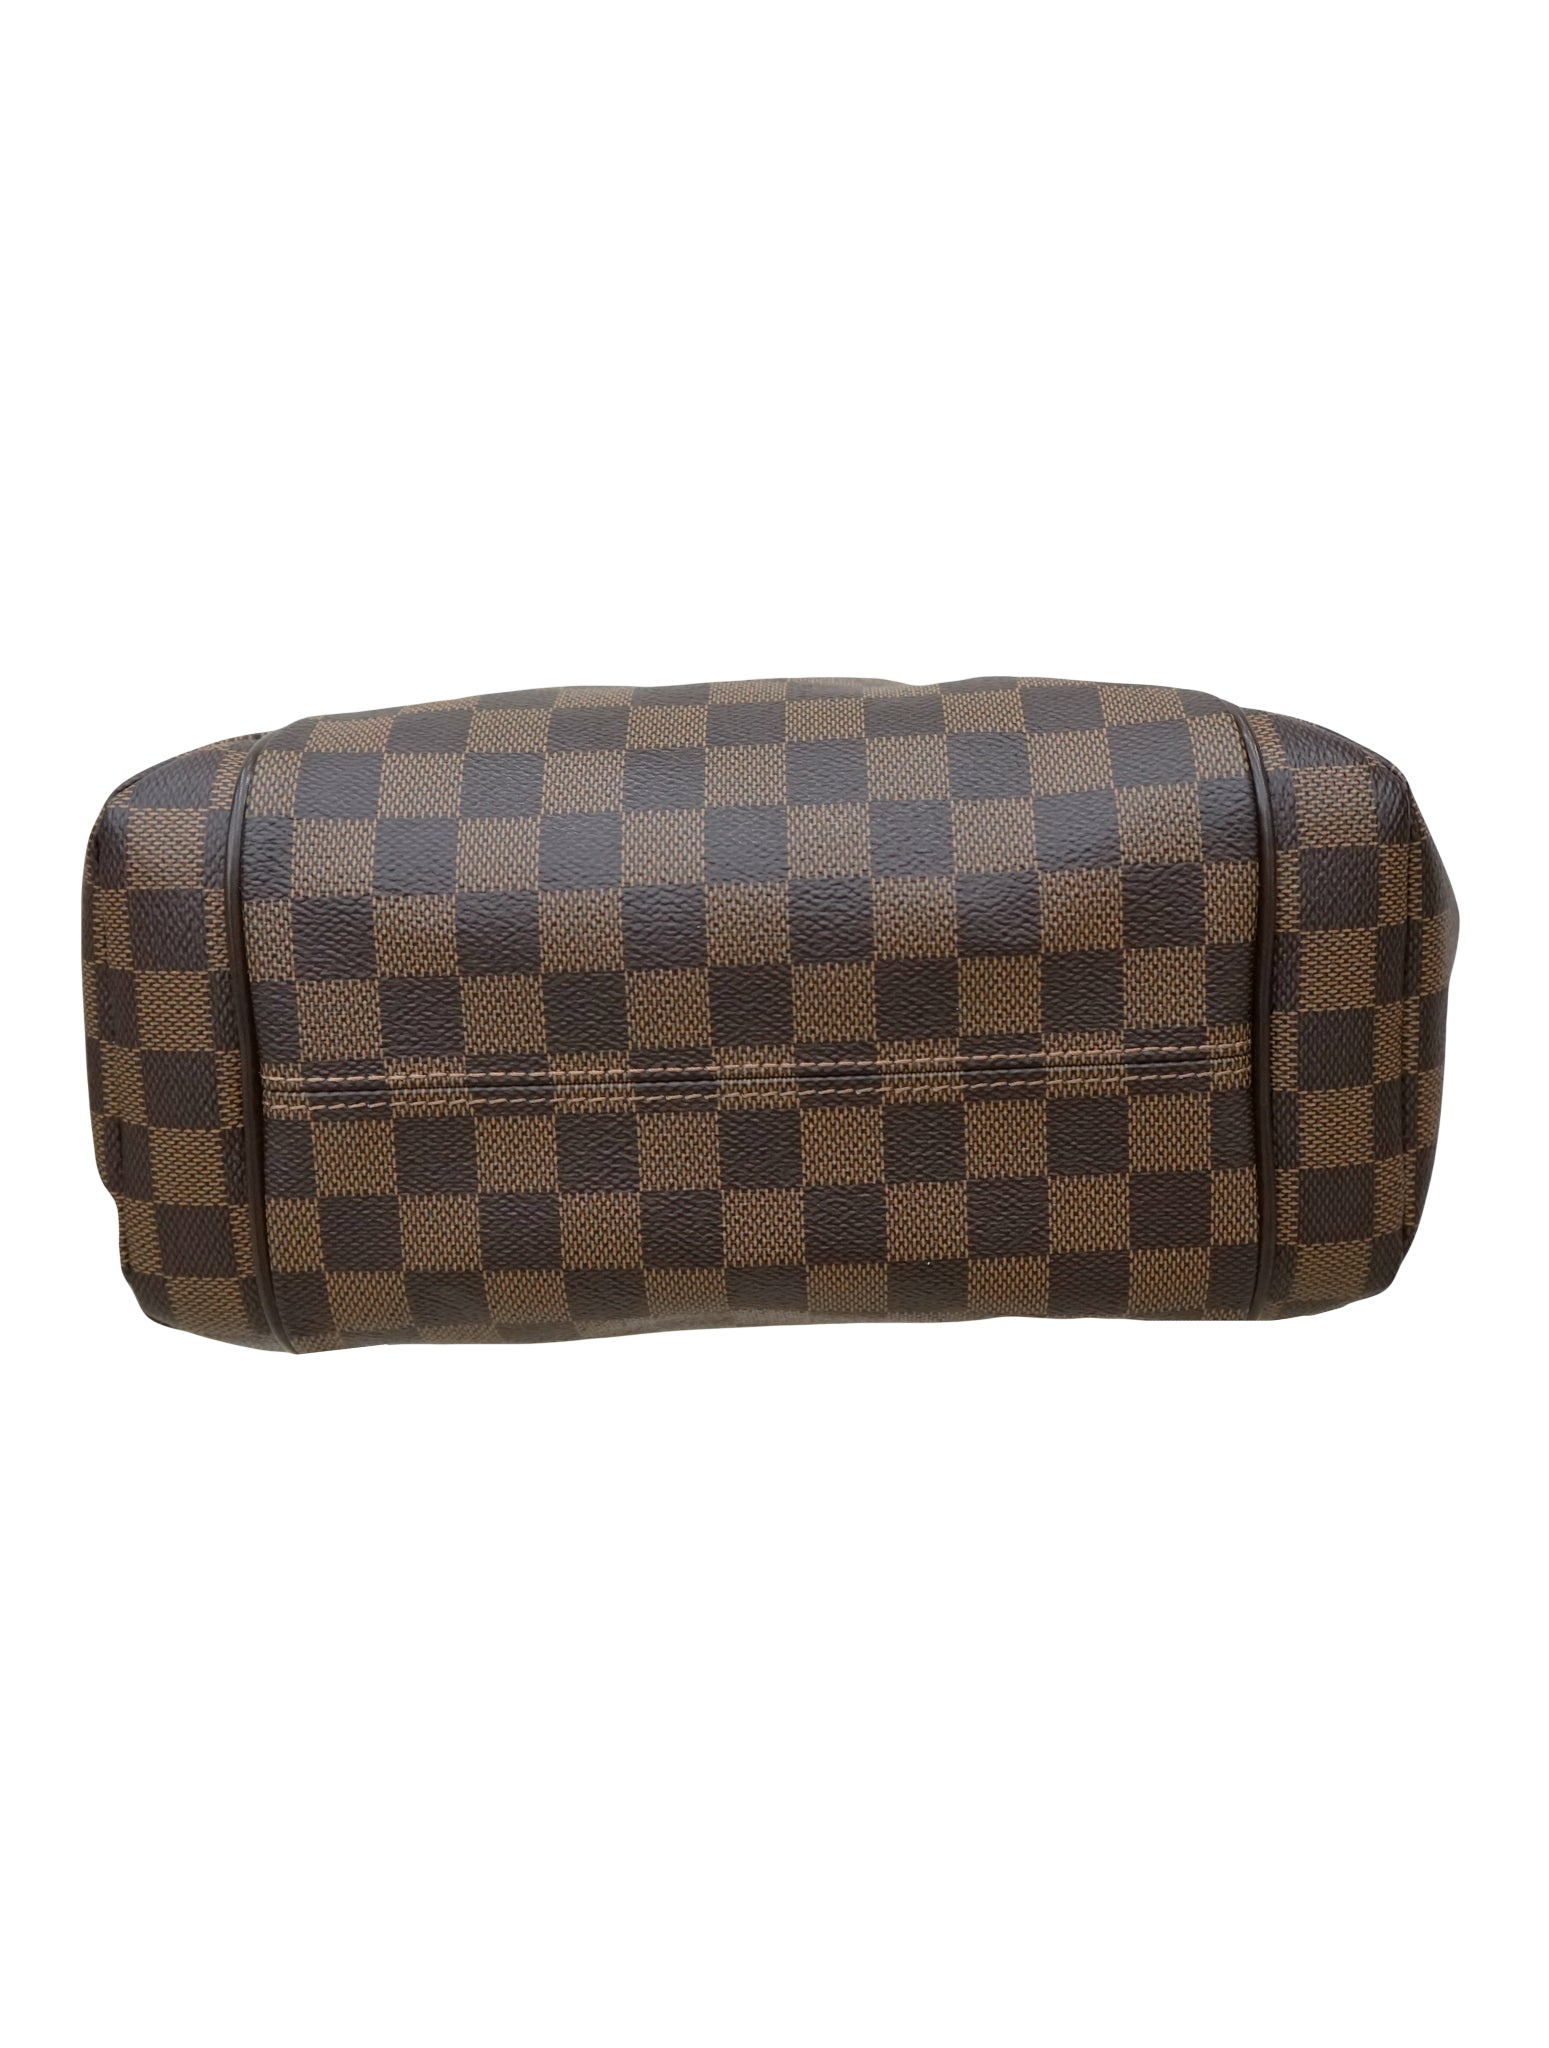 DAMIER EBENE CANVAS TOTALLY BAG